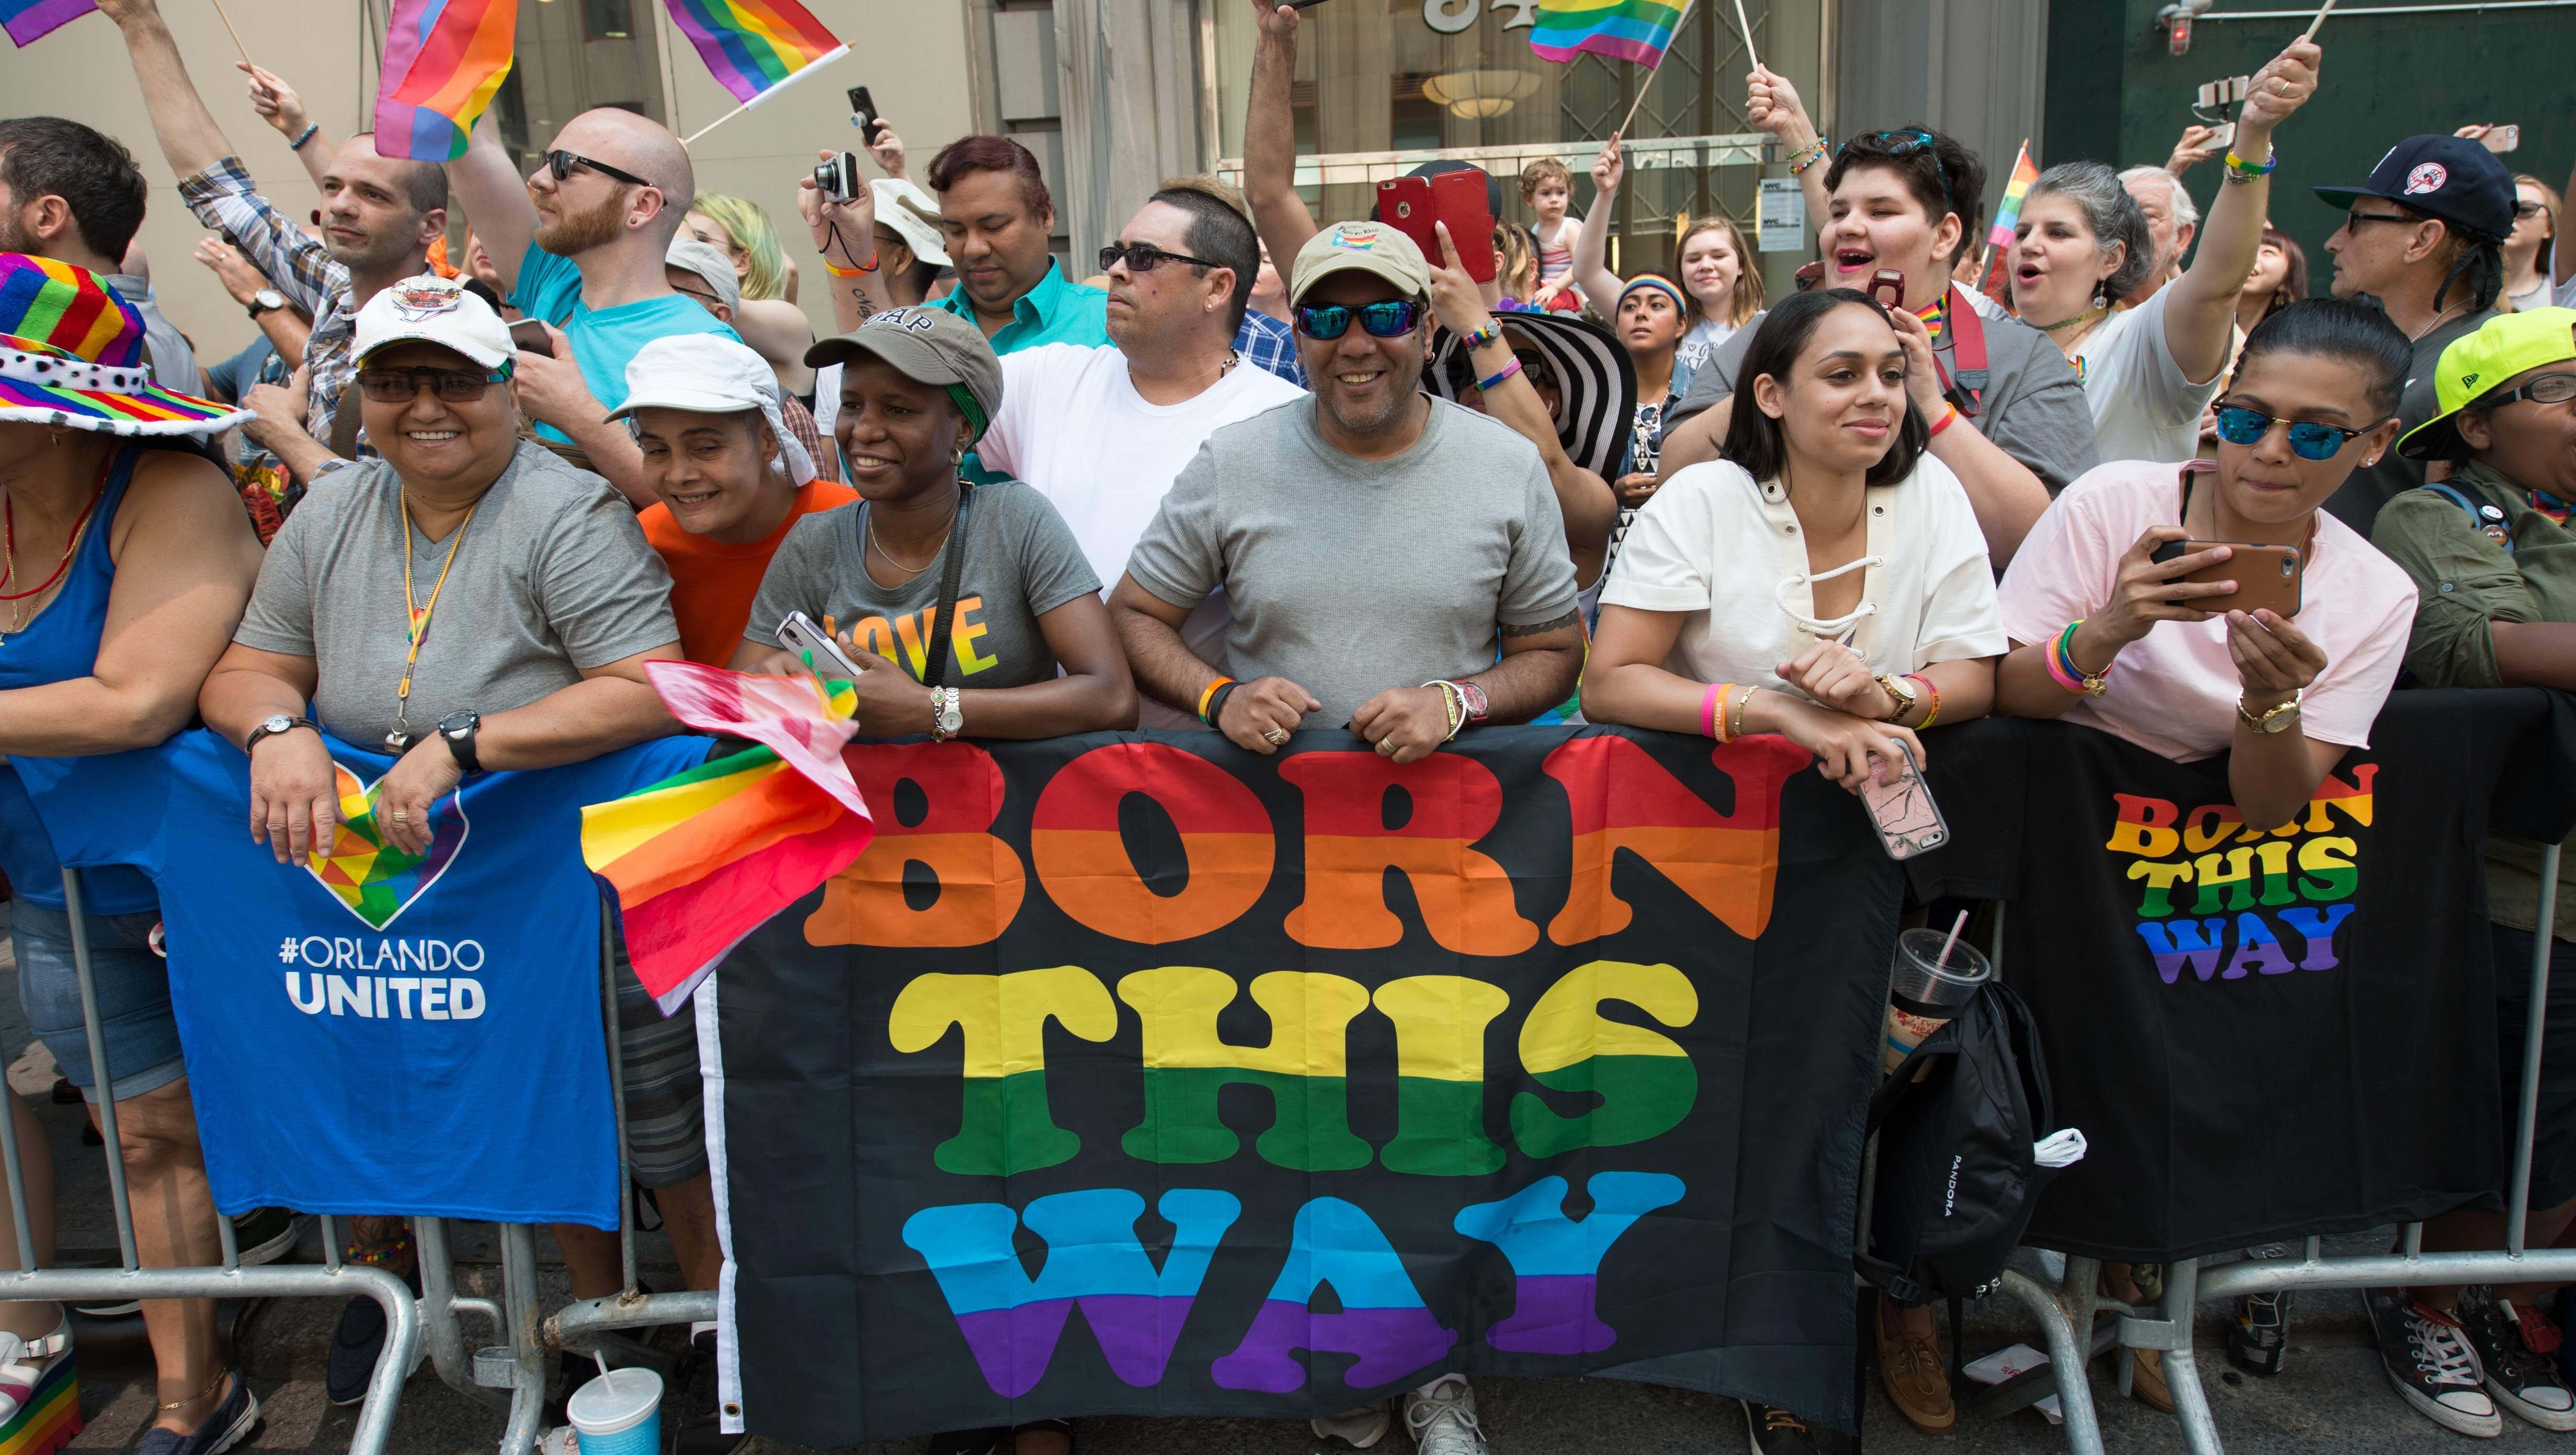 Born this way'? For many in LGBT community, it's way more complex